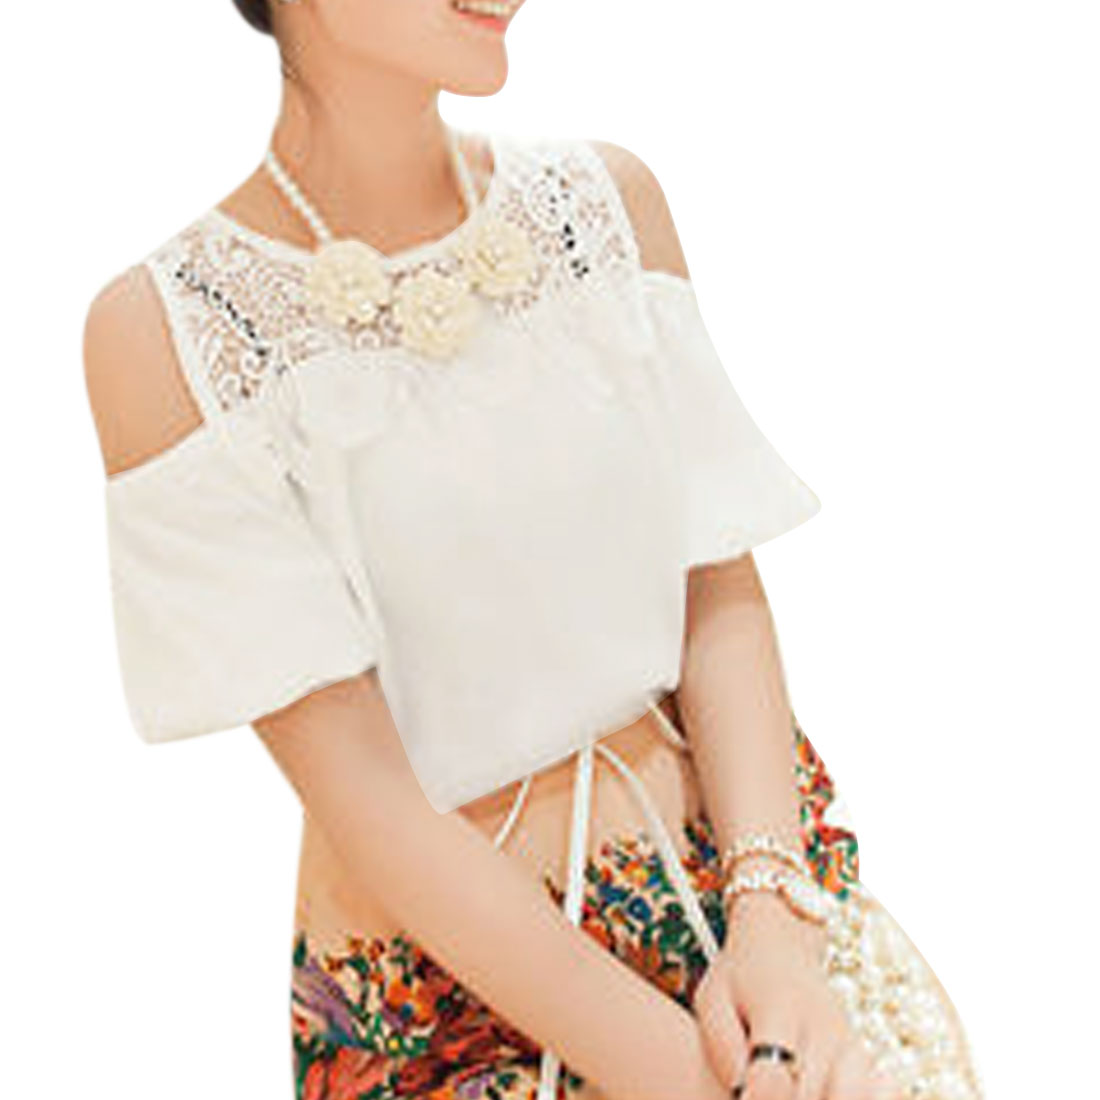 Ladies Short Puff-Sleeved Crochet Hollow Upper Cutout Shoulder White Blouse S